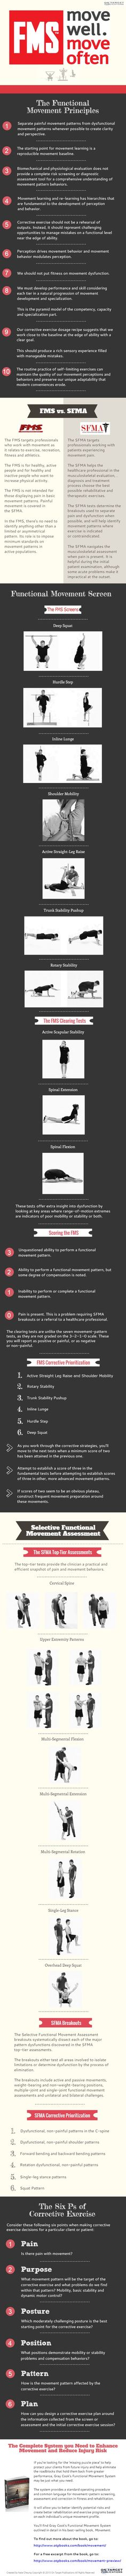 Functional Movement Systems [Infographic]